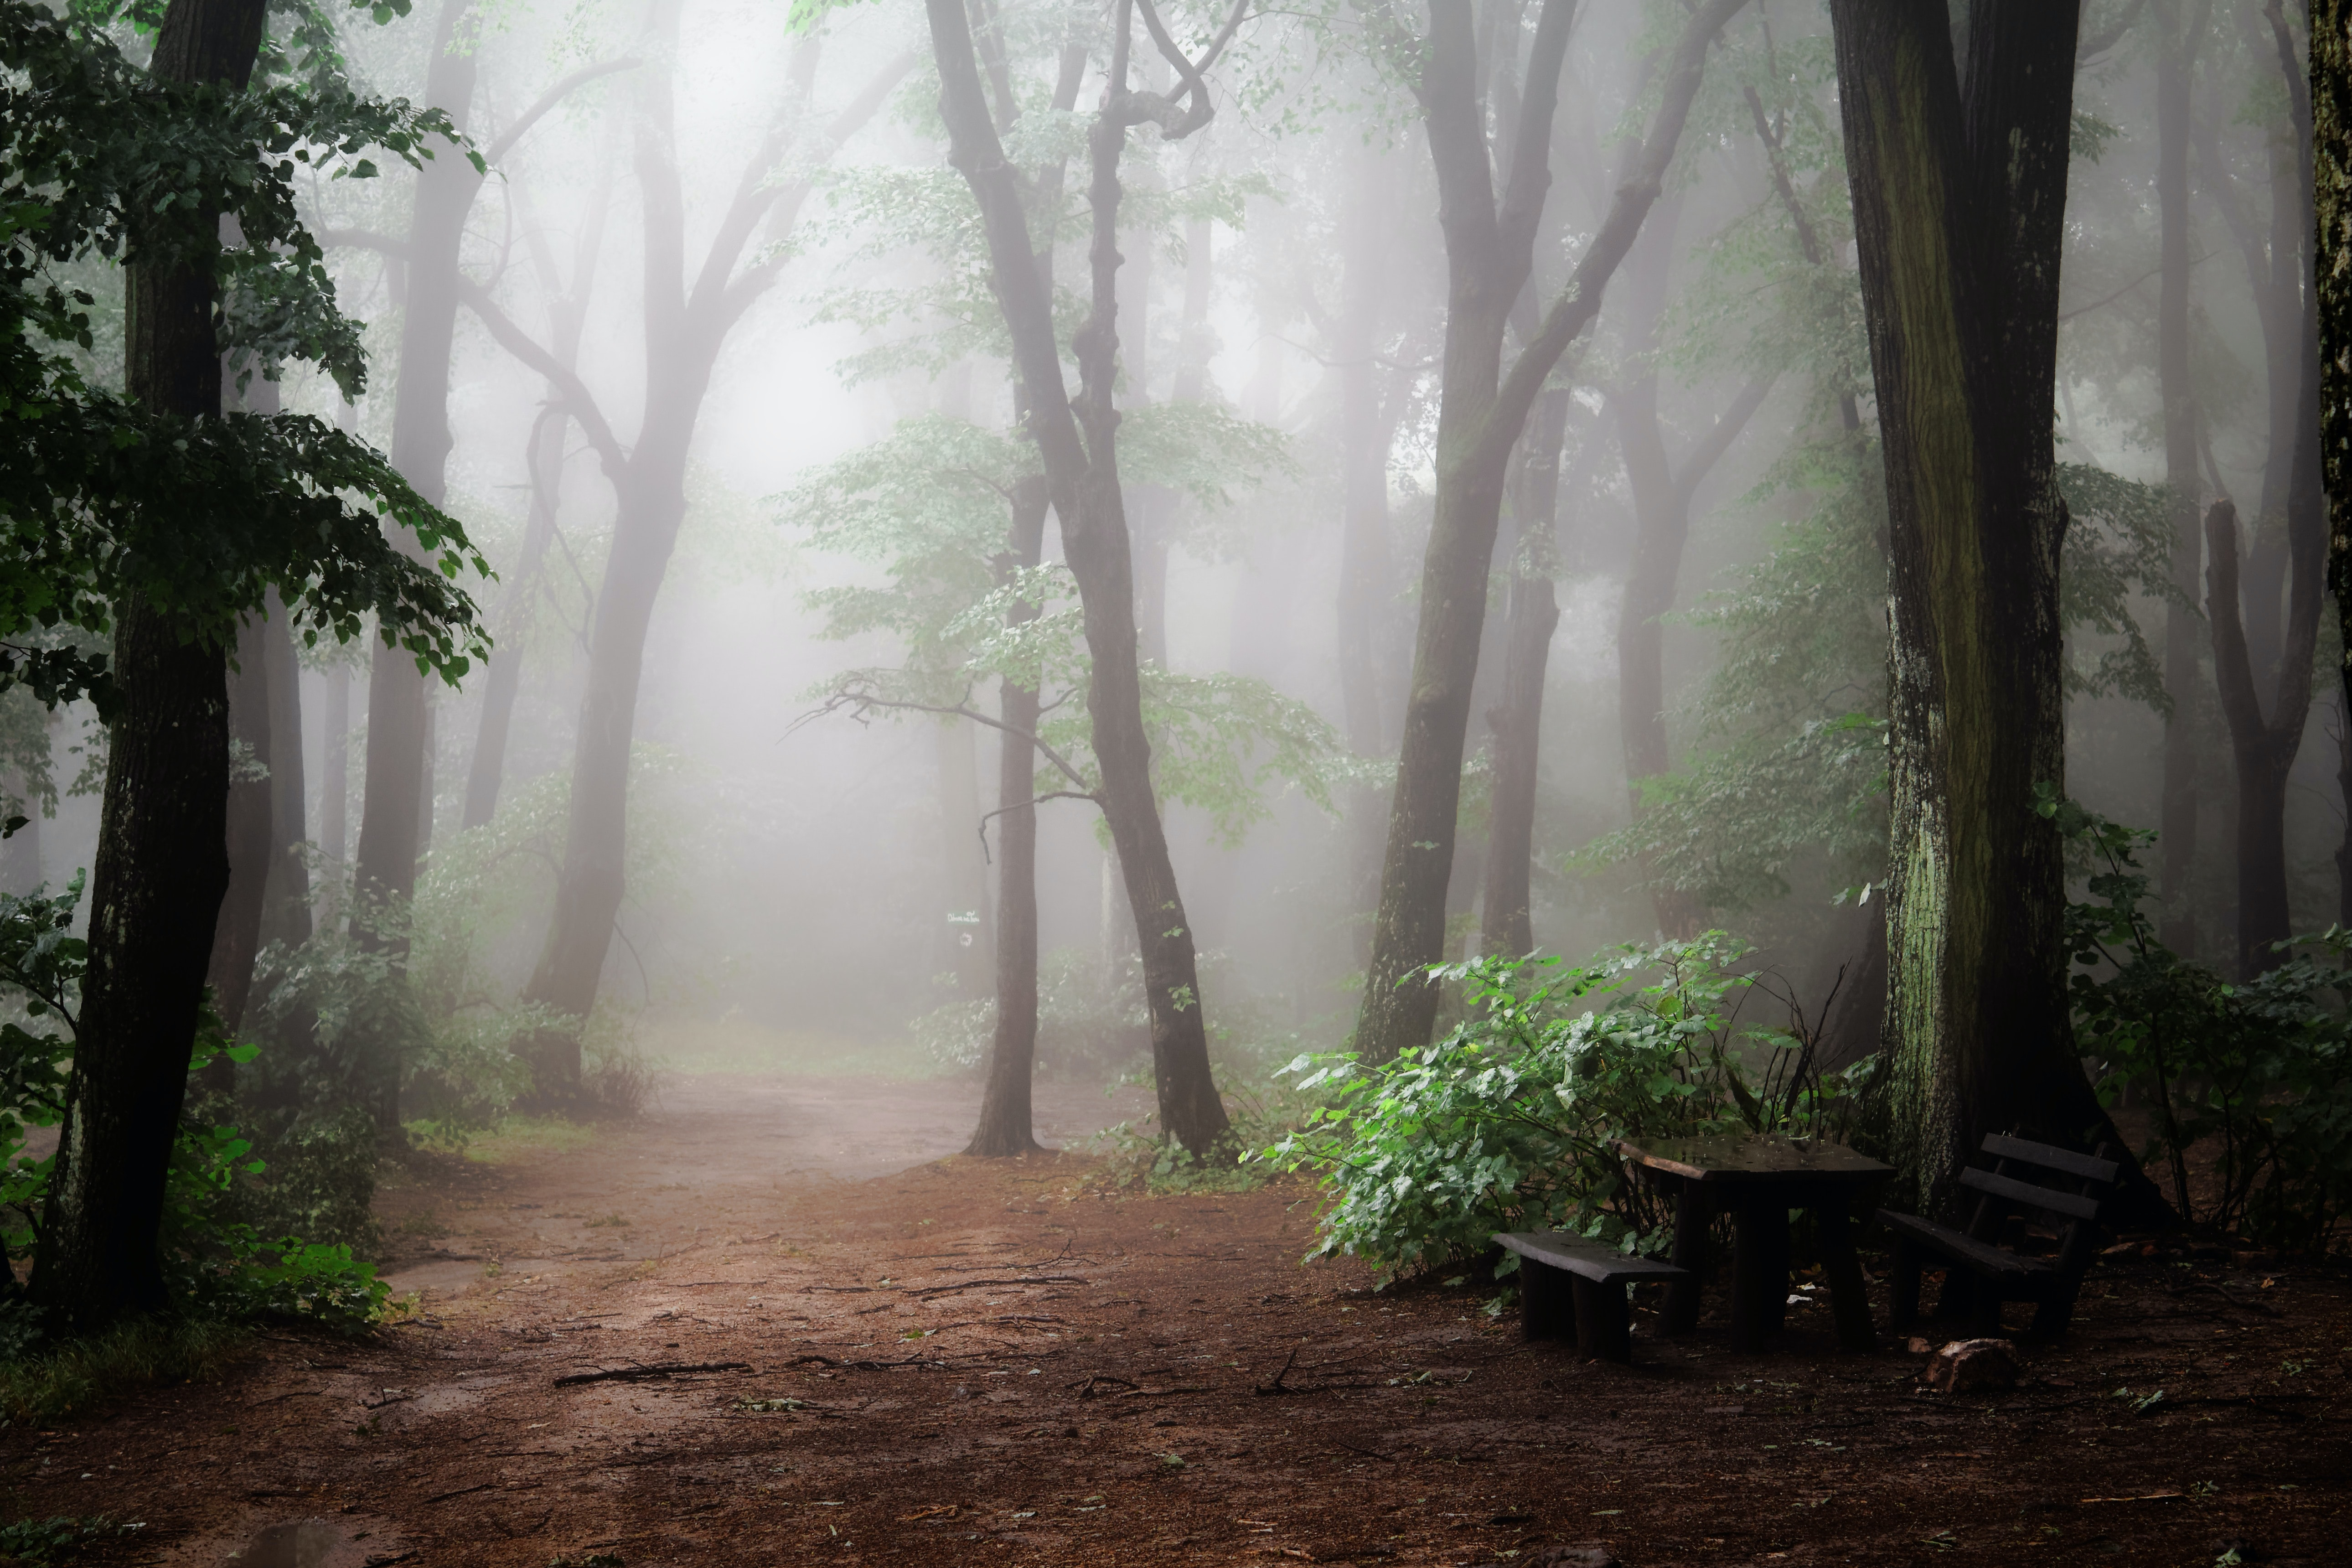 Misty and mystical isolated forest scene in Fruška Gora